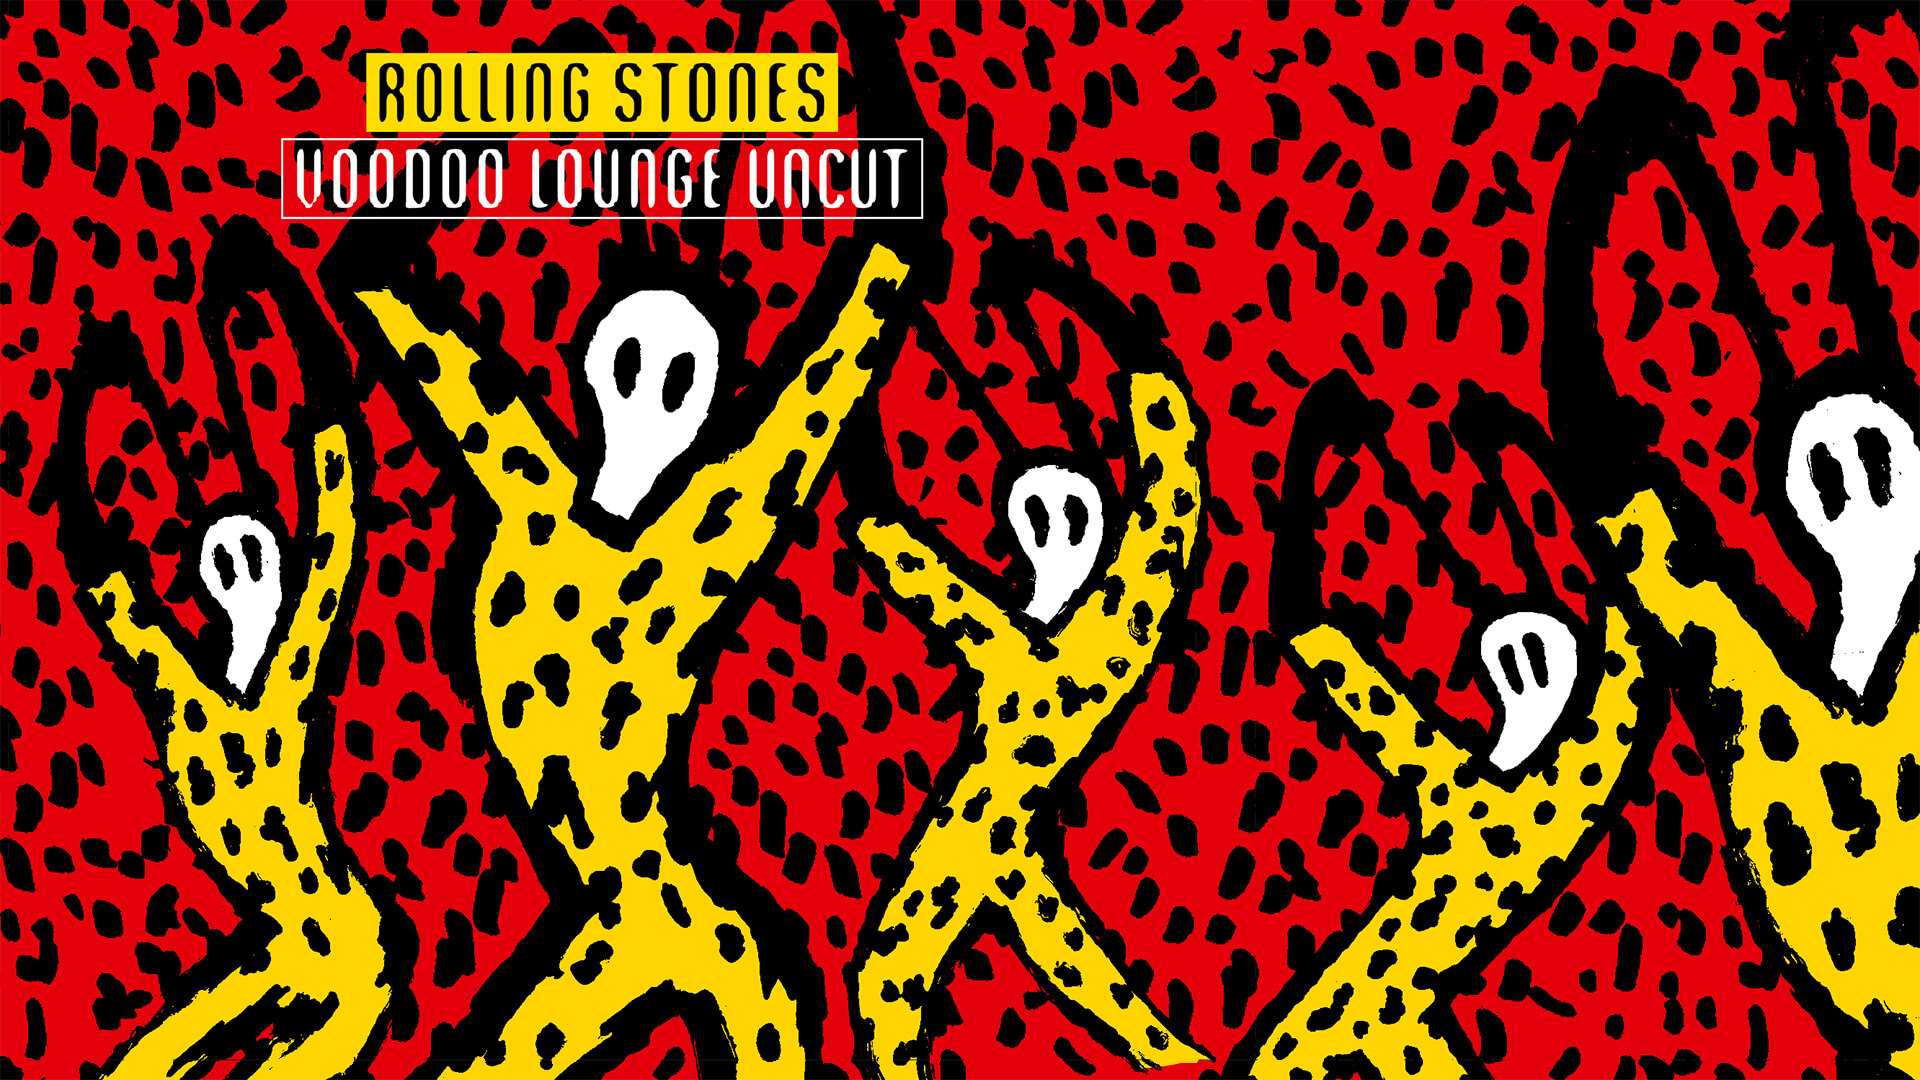 The Rolling Stones - Brand Identities and Marketing Campaigns